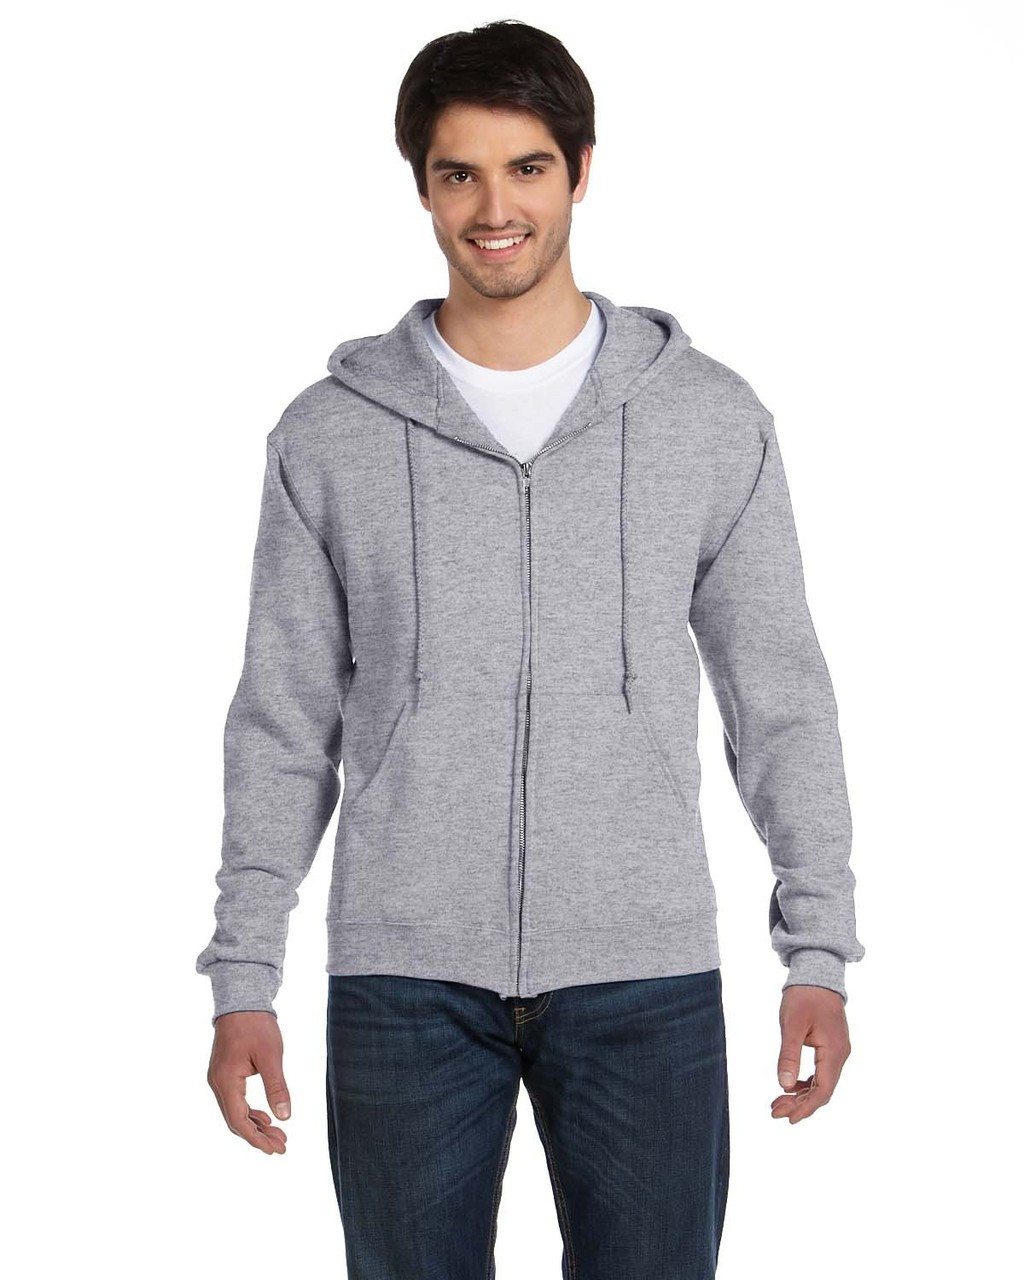 Athletic Heather - 82230 Fruit of the Loom Supercotton™ Full-Zip Hoodie | Blankclothing.ca